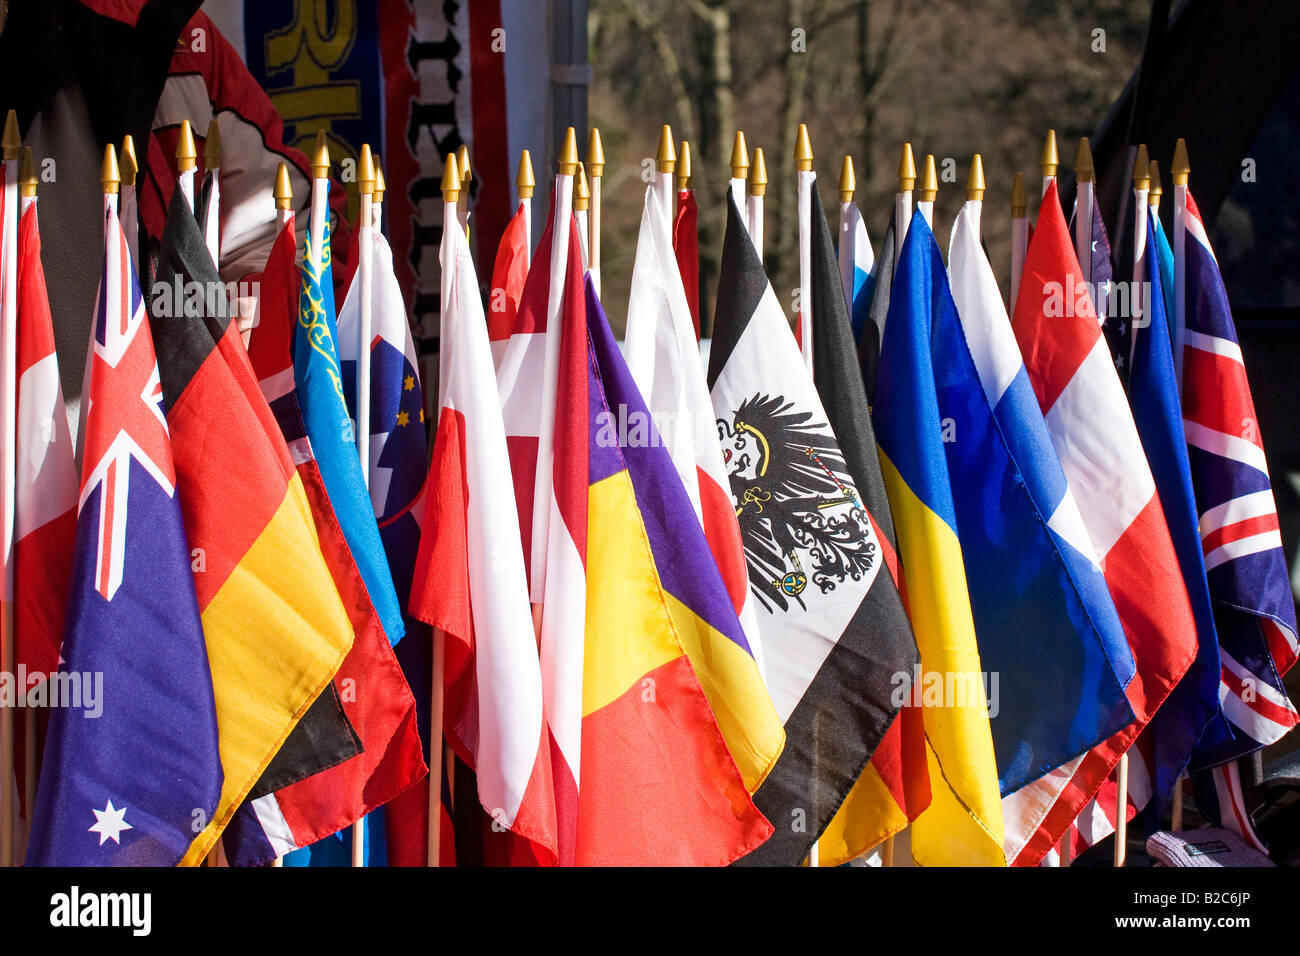 Flags on display at a fan shop, Bobsleigh World Cup, Winterberg, Sauerland, Germany, Europe - Stock Image